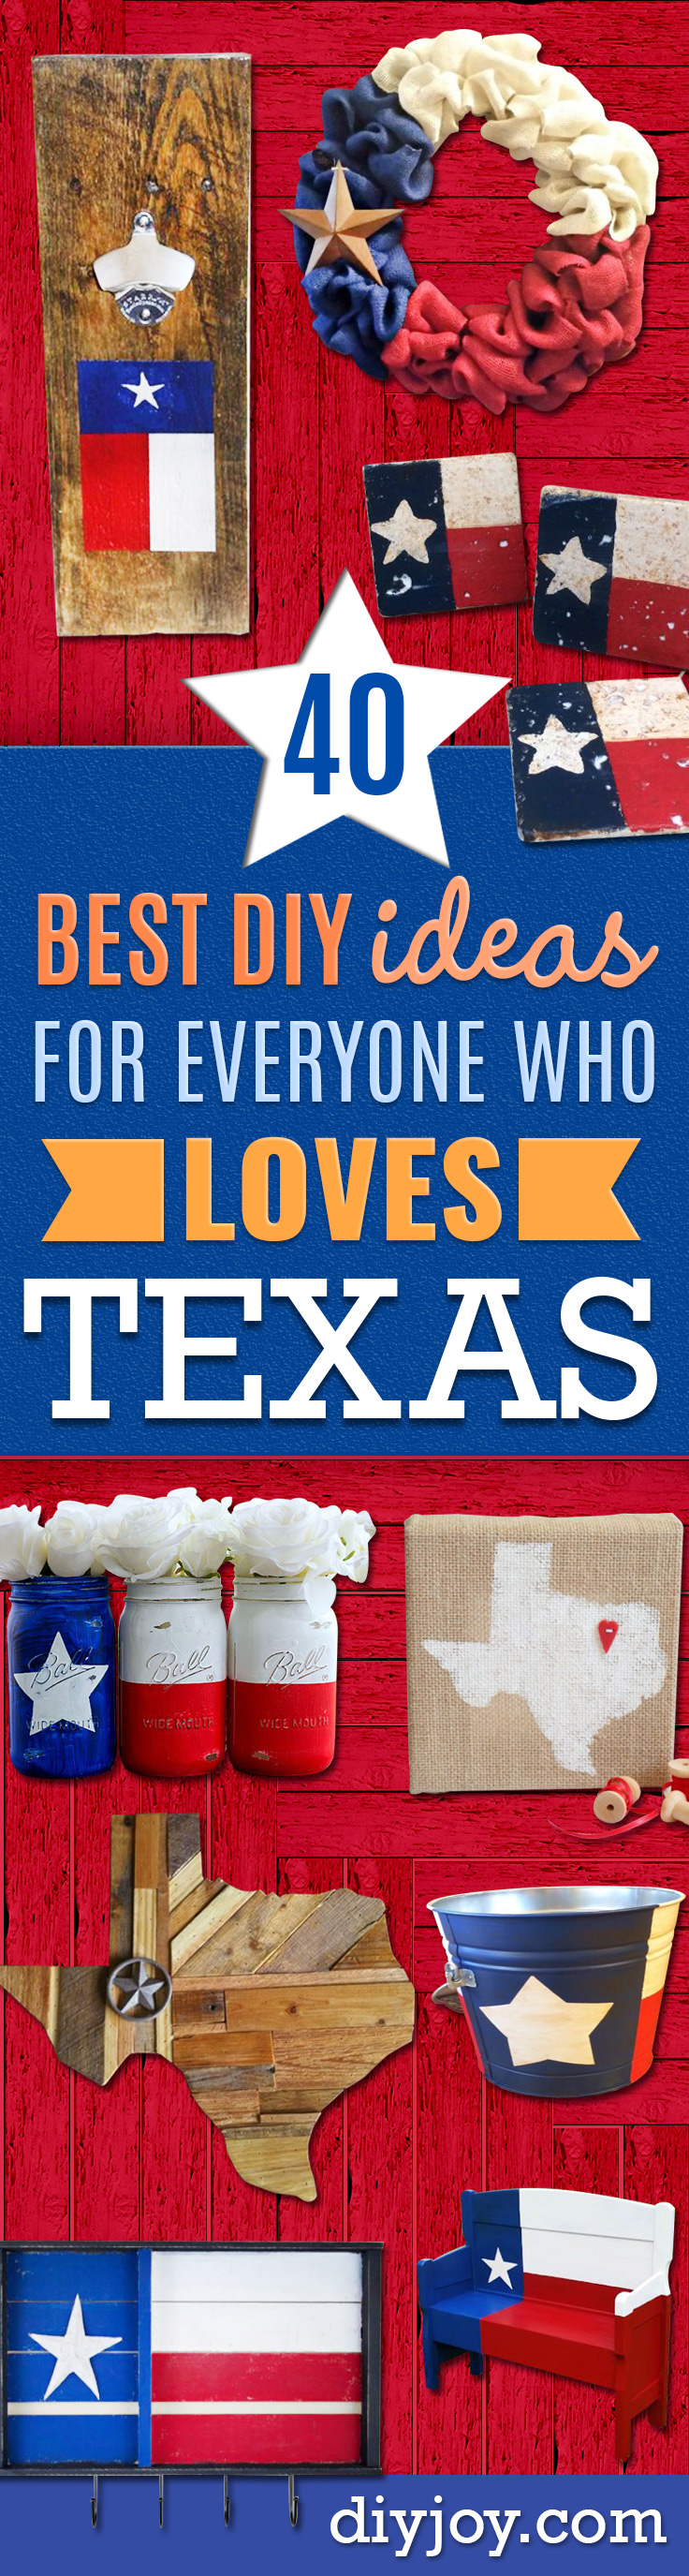 DIY Ideas For Everyone Who Loves Texas - Cute Lone Star State Crafts In The Shape of Texas - Best Texan Quotes, Sayings and Signs for Your Porch and Home - Easy Texas Themed Decorating Ideas - Country Crafts, Rustic Home Decor, String Art and Map Projects Shaped Like Texas - Decor for Living Room, Bedroom, Bathroom, Kitchen and Yard http://diyjoy.com/diy-ideas-Texas